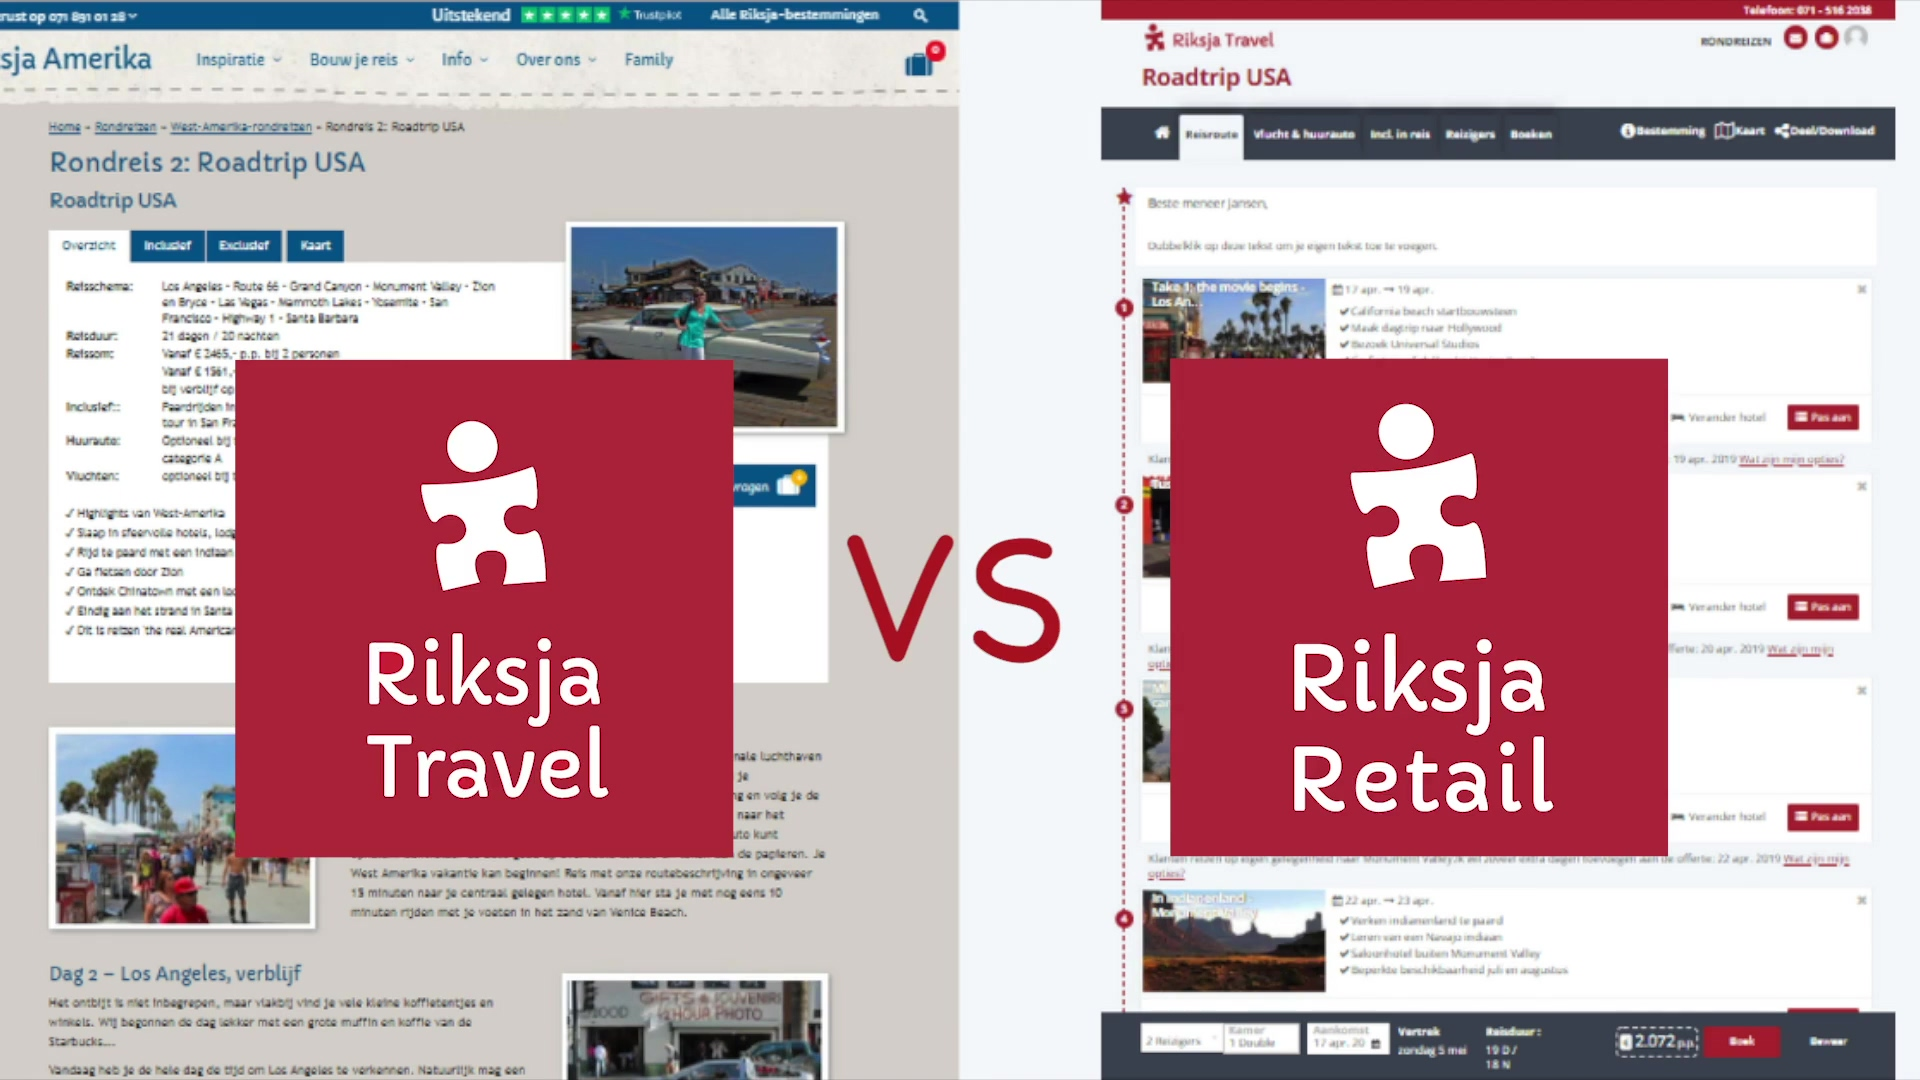 Travelplanner vs Consumentensite (1)